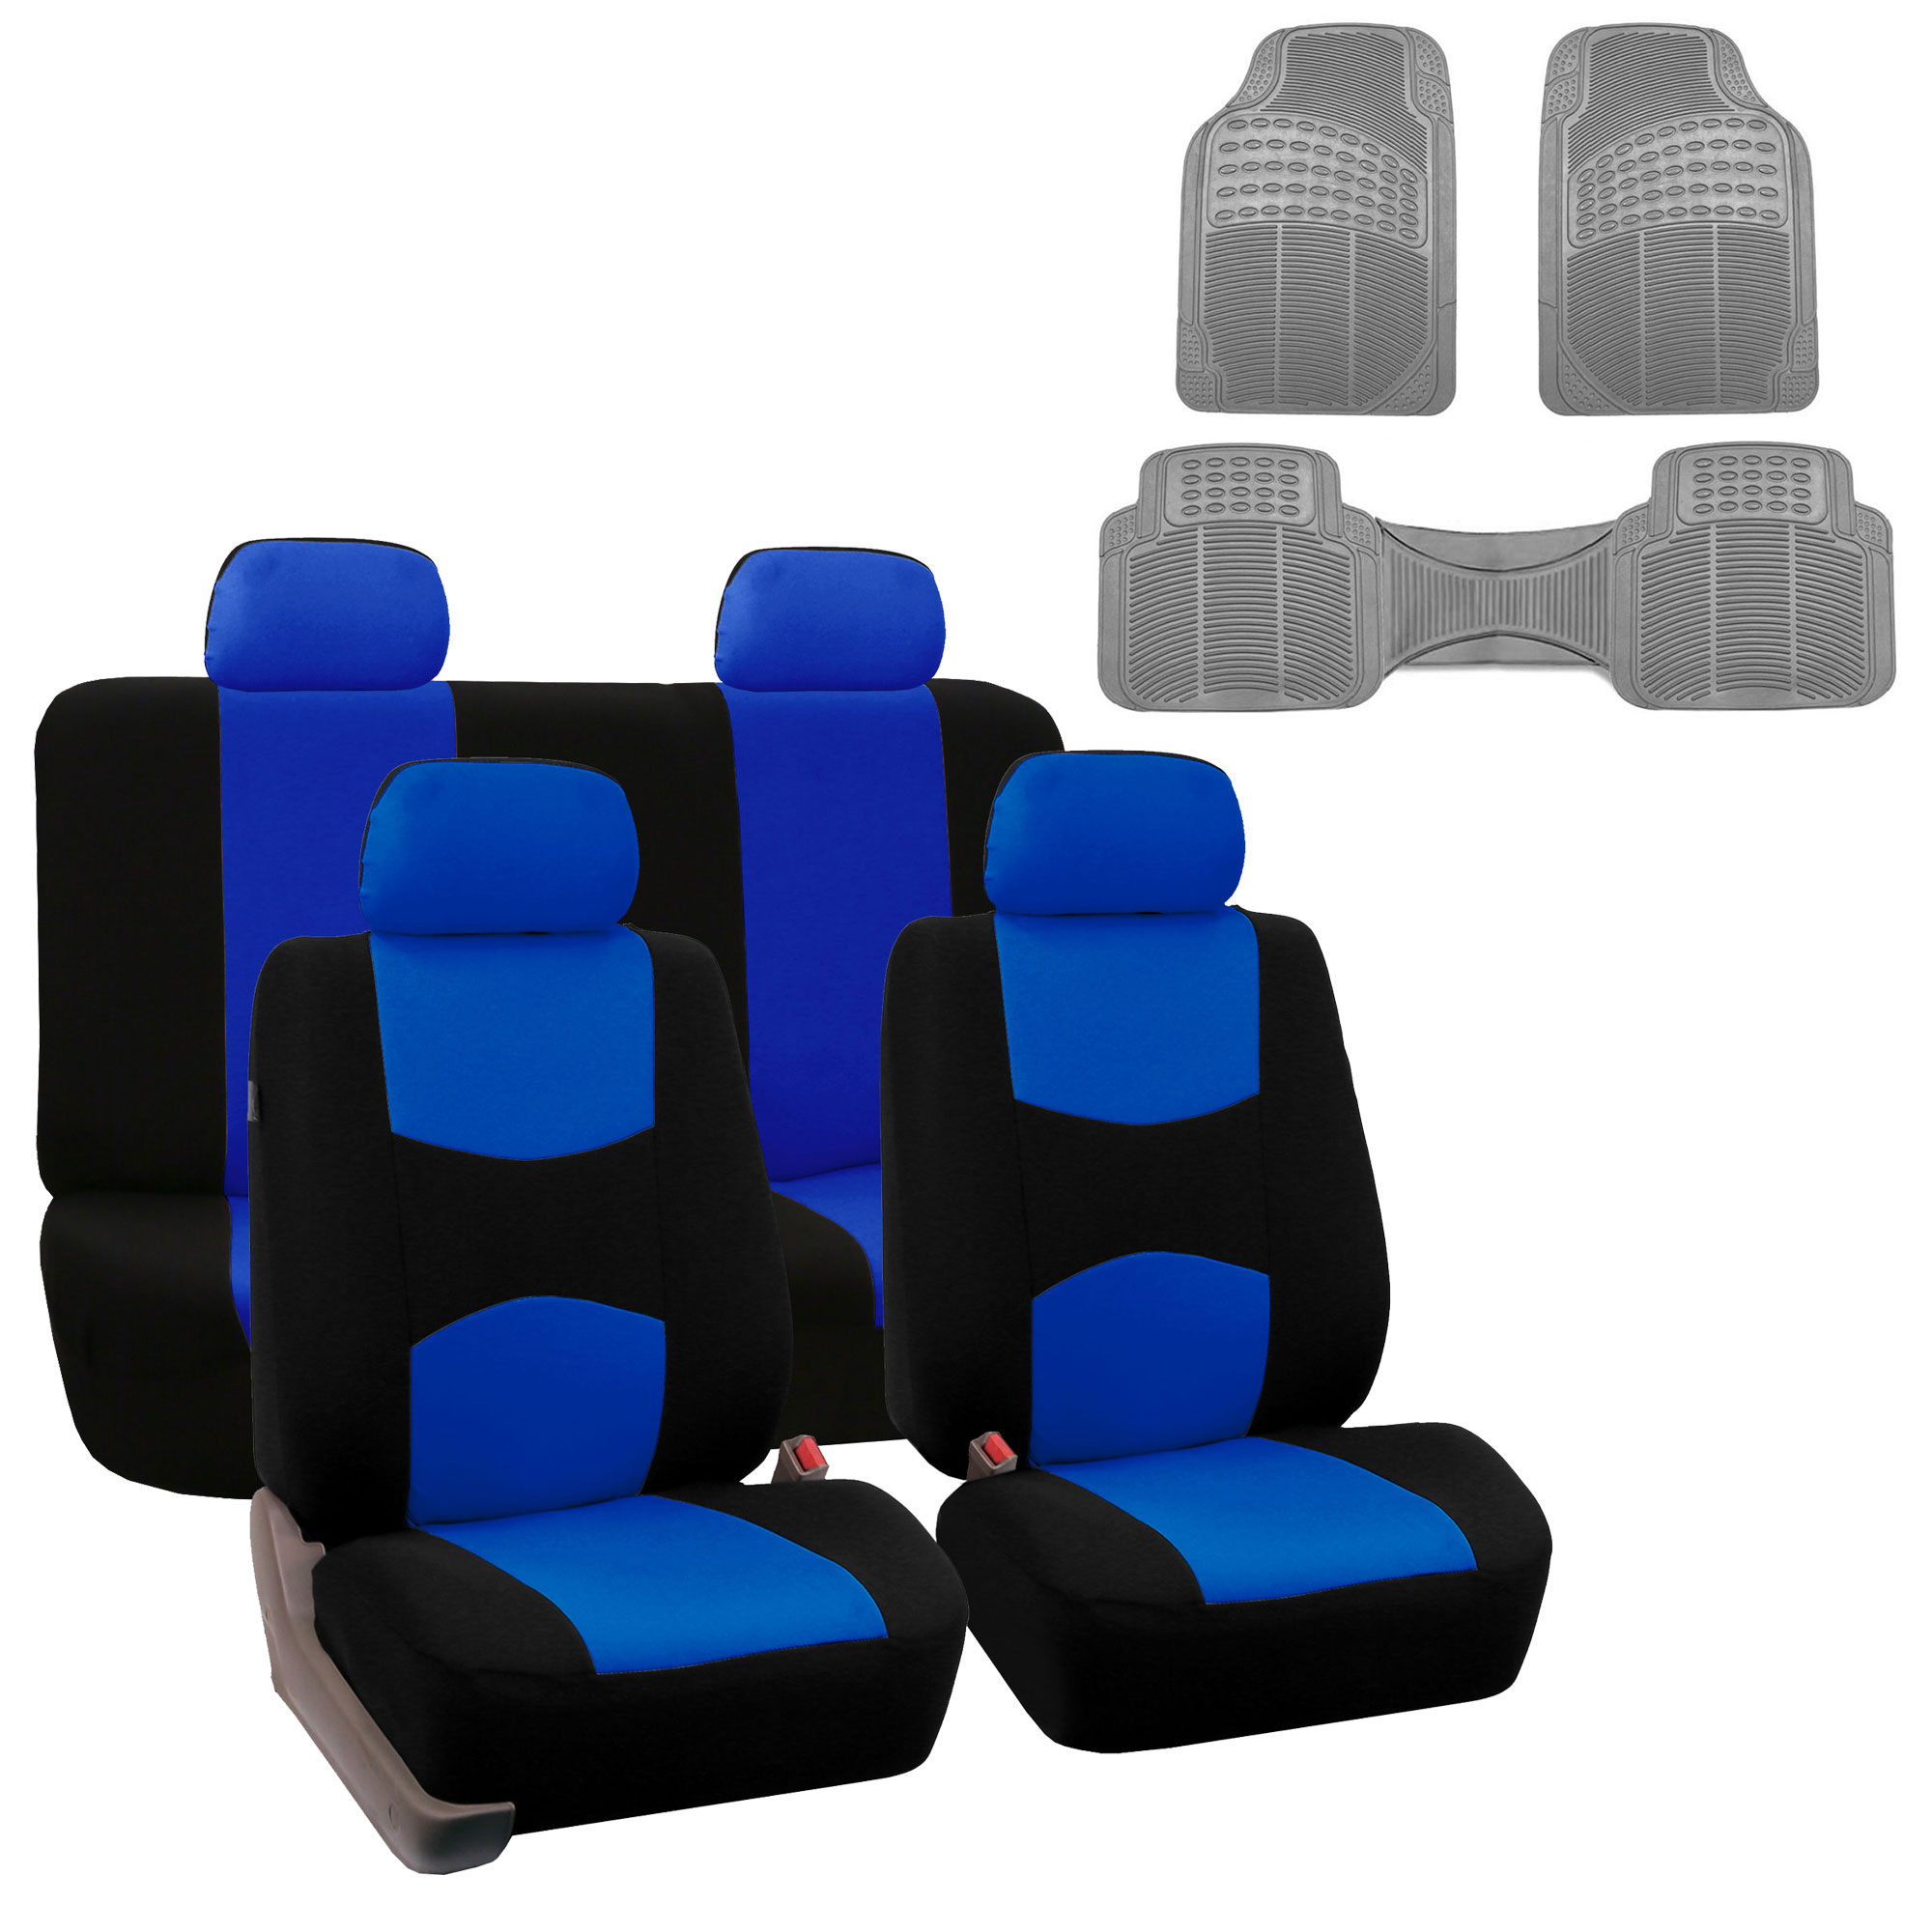 Car Seat Cover Full Set For For Auto Car SUV Truck Van w/ Floor Mat Blue